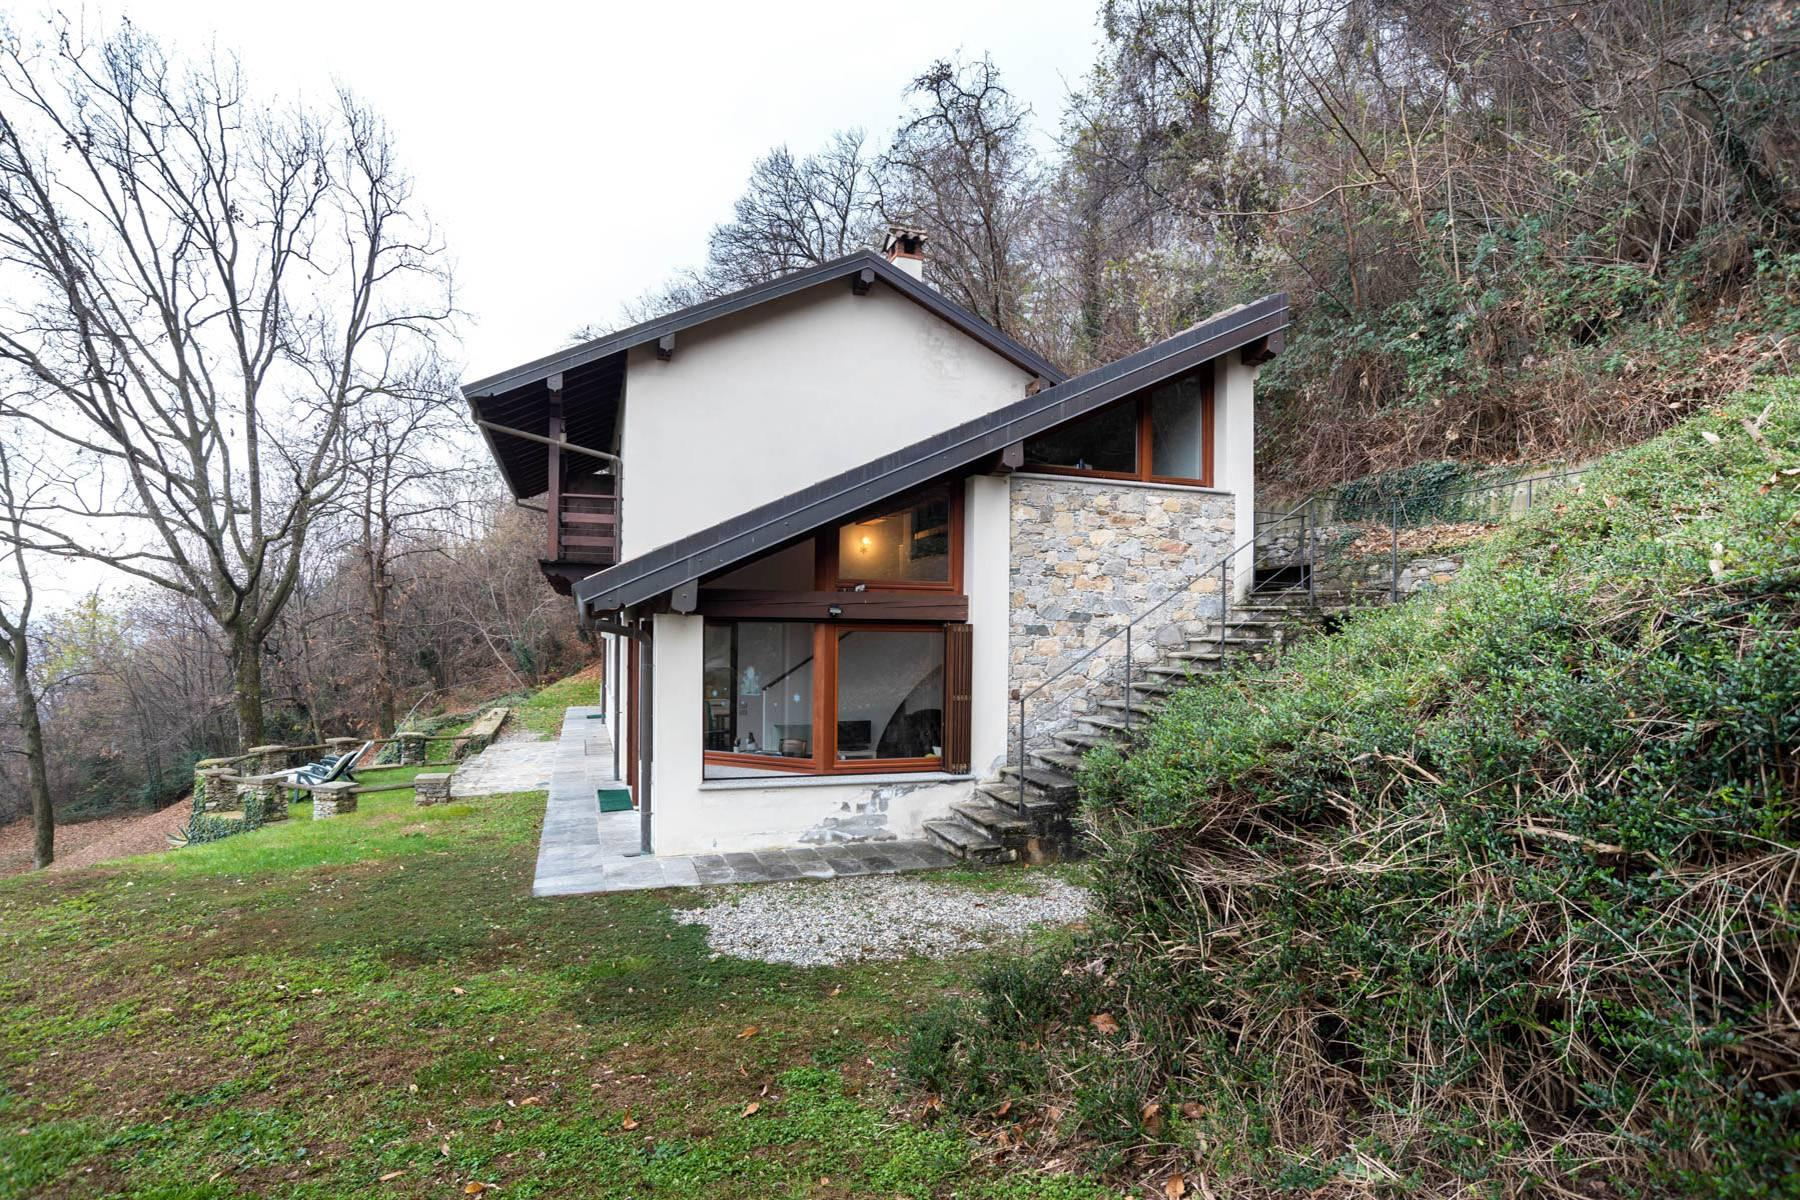 Among the hills of Massino Visconti, Villa surrounded by greenery - 4